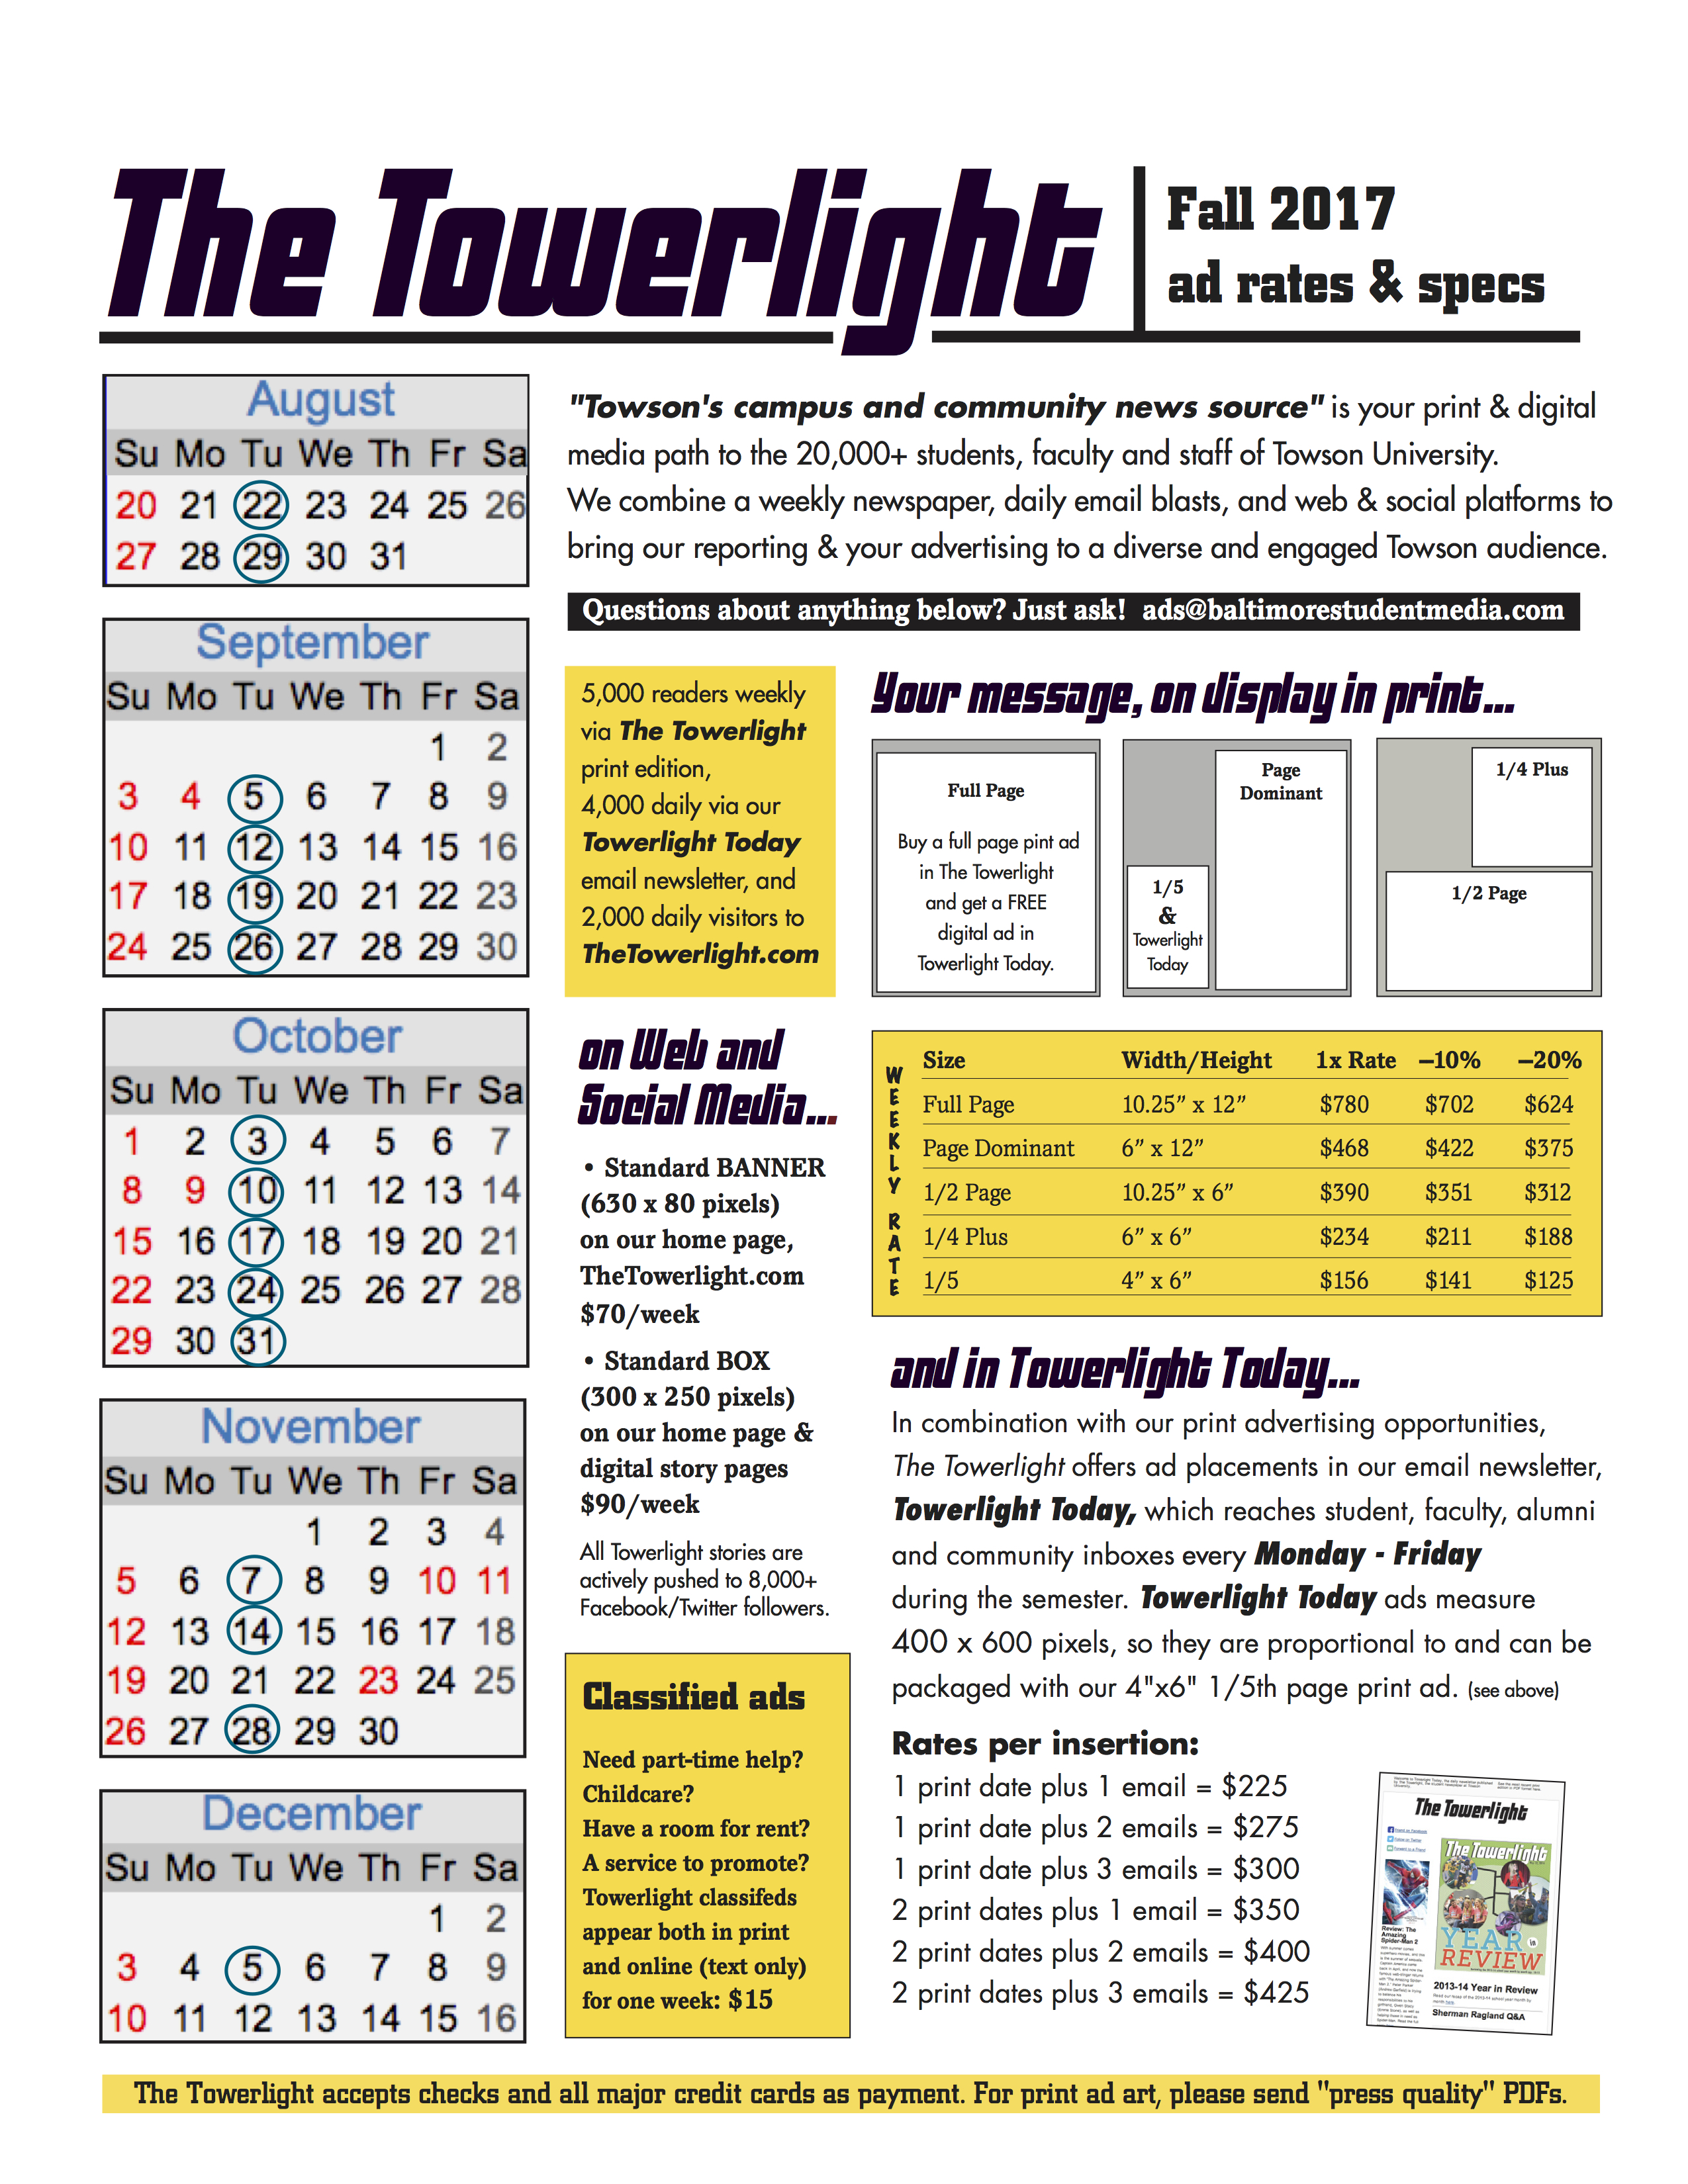 TowerlightRatesFall2017TwoSheet